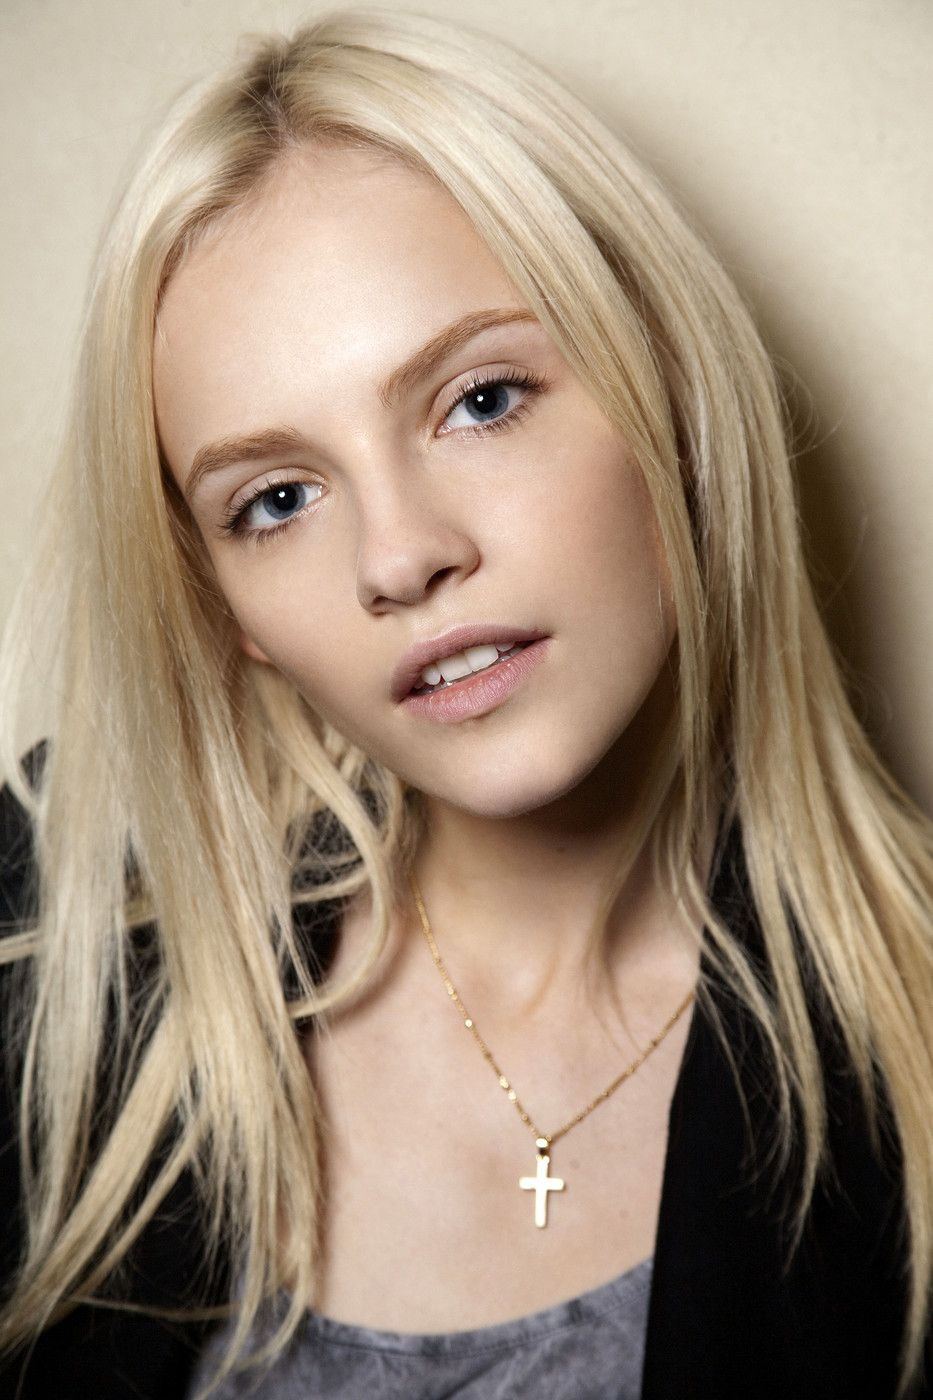 Ginta Lapina earned a  million dollar salary - leaving the net worth at 1 million in 2018